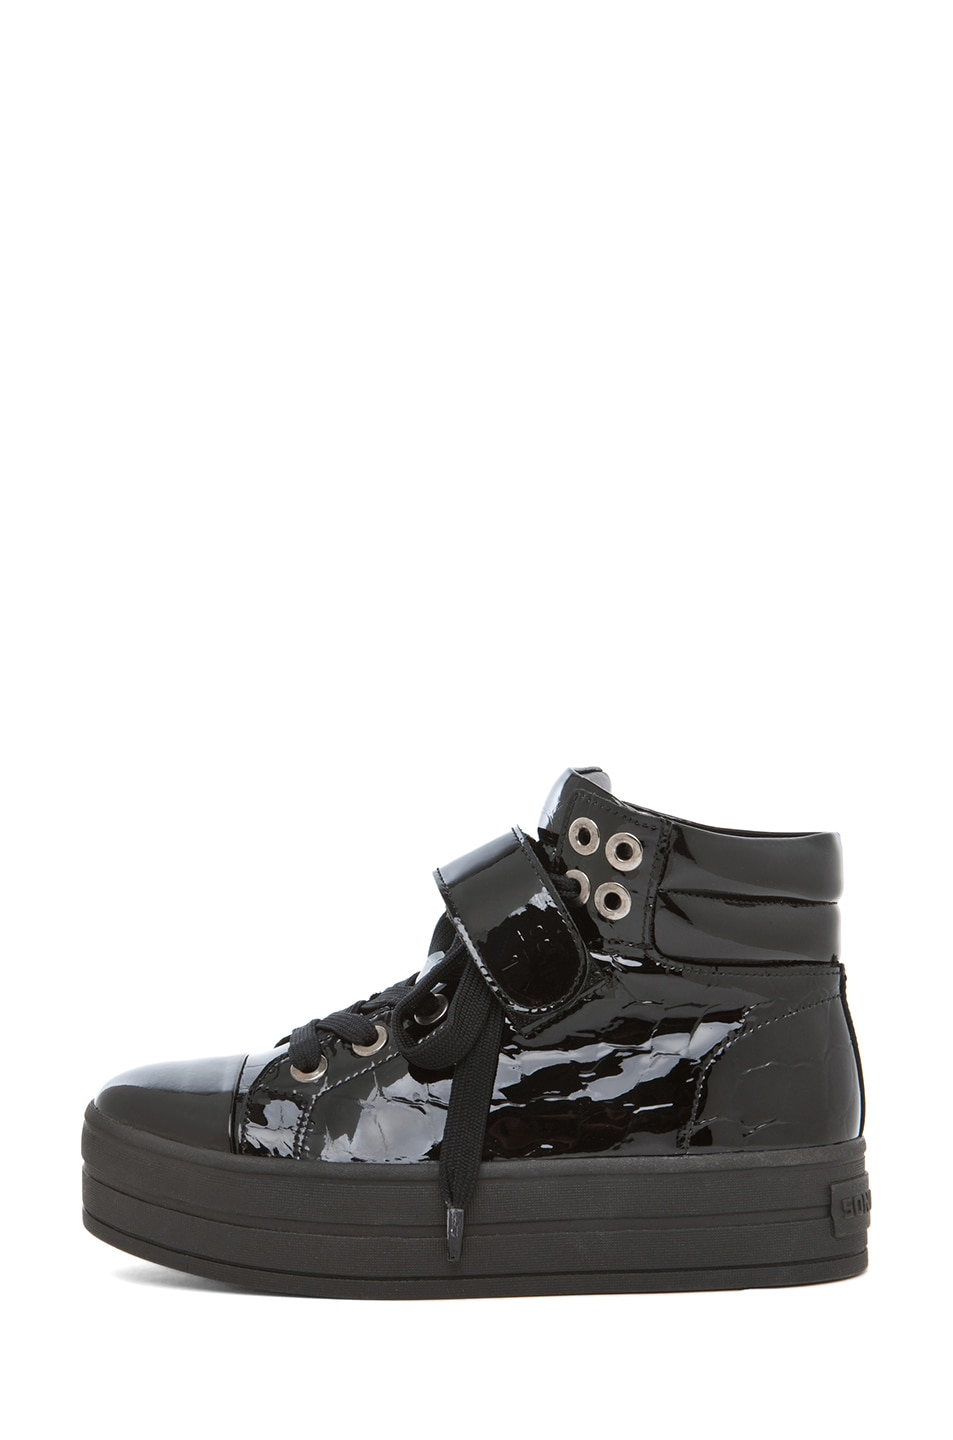 Image 1 of SONIA RYKIEL High Top Sneaker in Black Croco